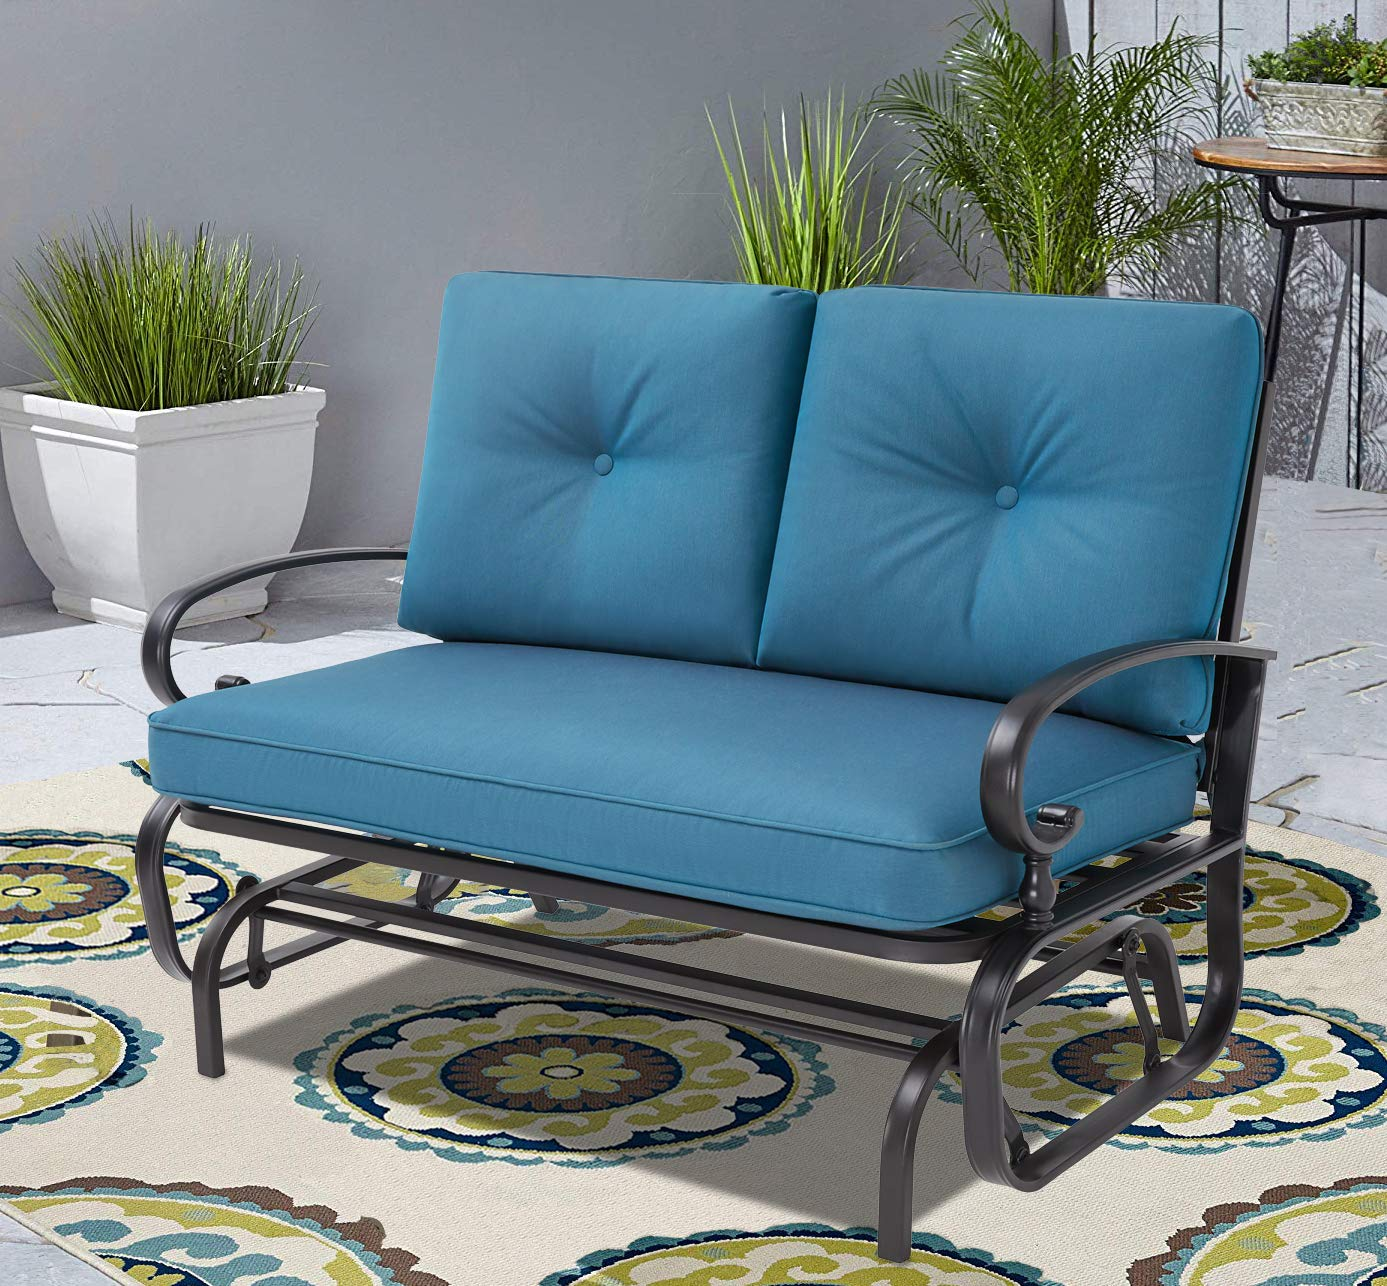 Incbruce Outdoor Swing Glider Rocking Chair Patio Bench for 2 Person, Garden Loveseat Seating Patio Wrought Iron Chair Set W/Cushion, Peacock Blue by Incbruce (Image #2)